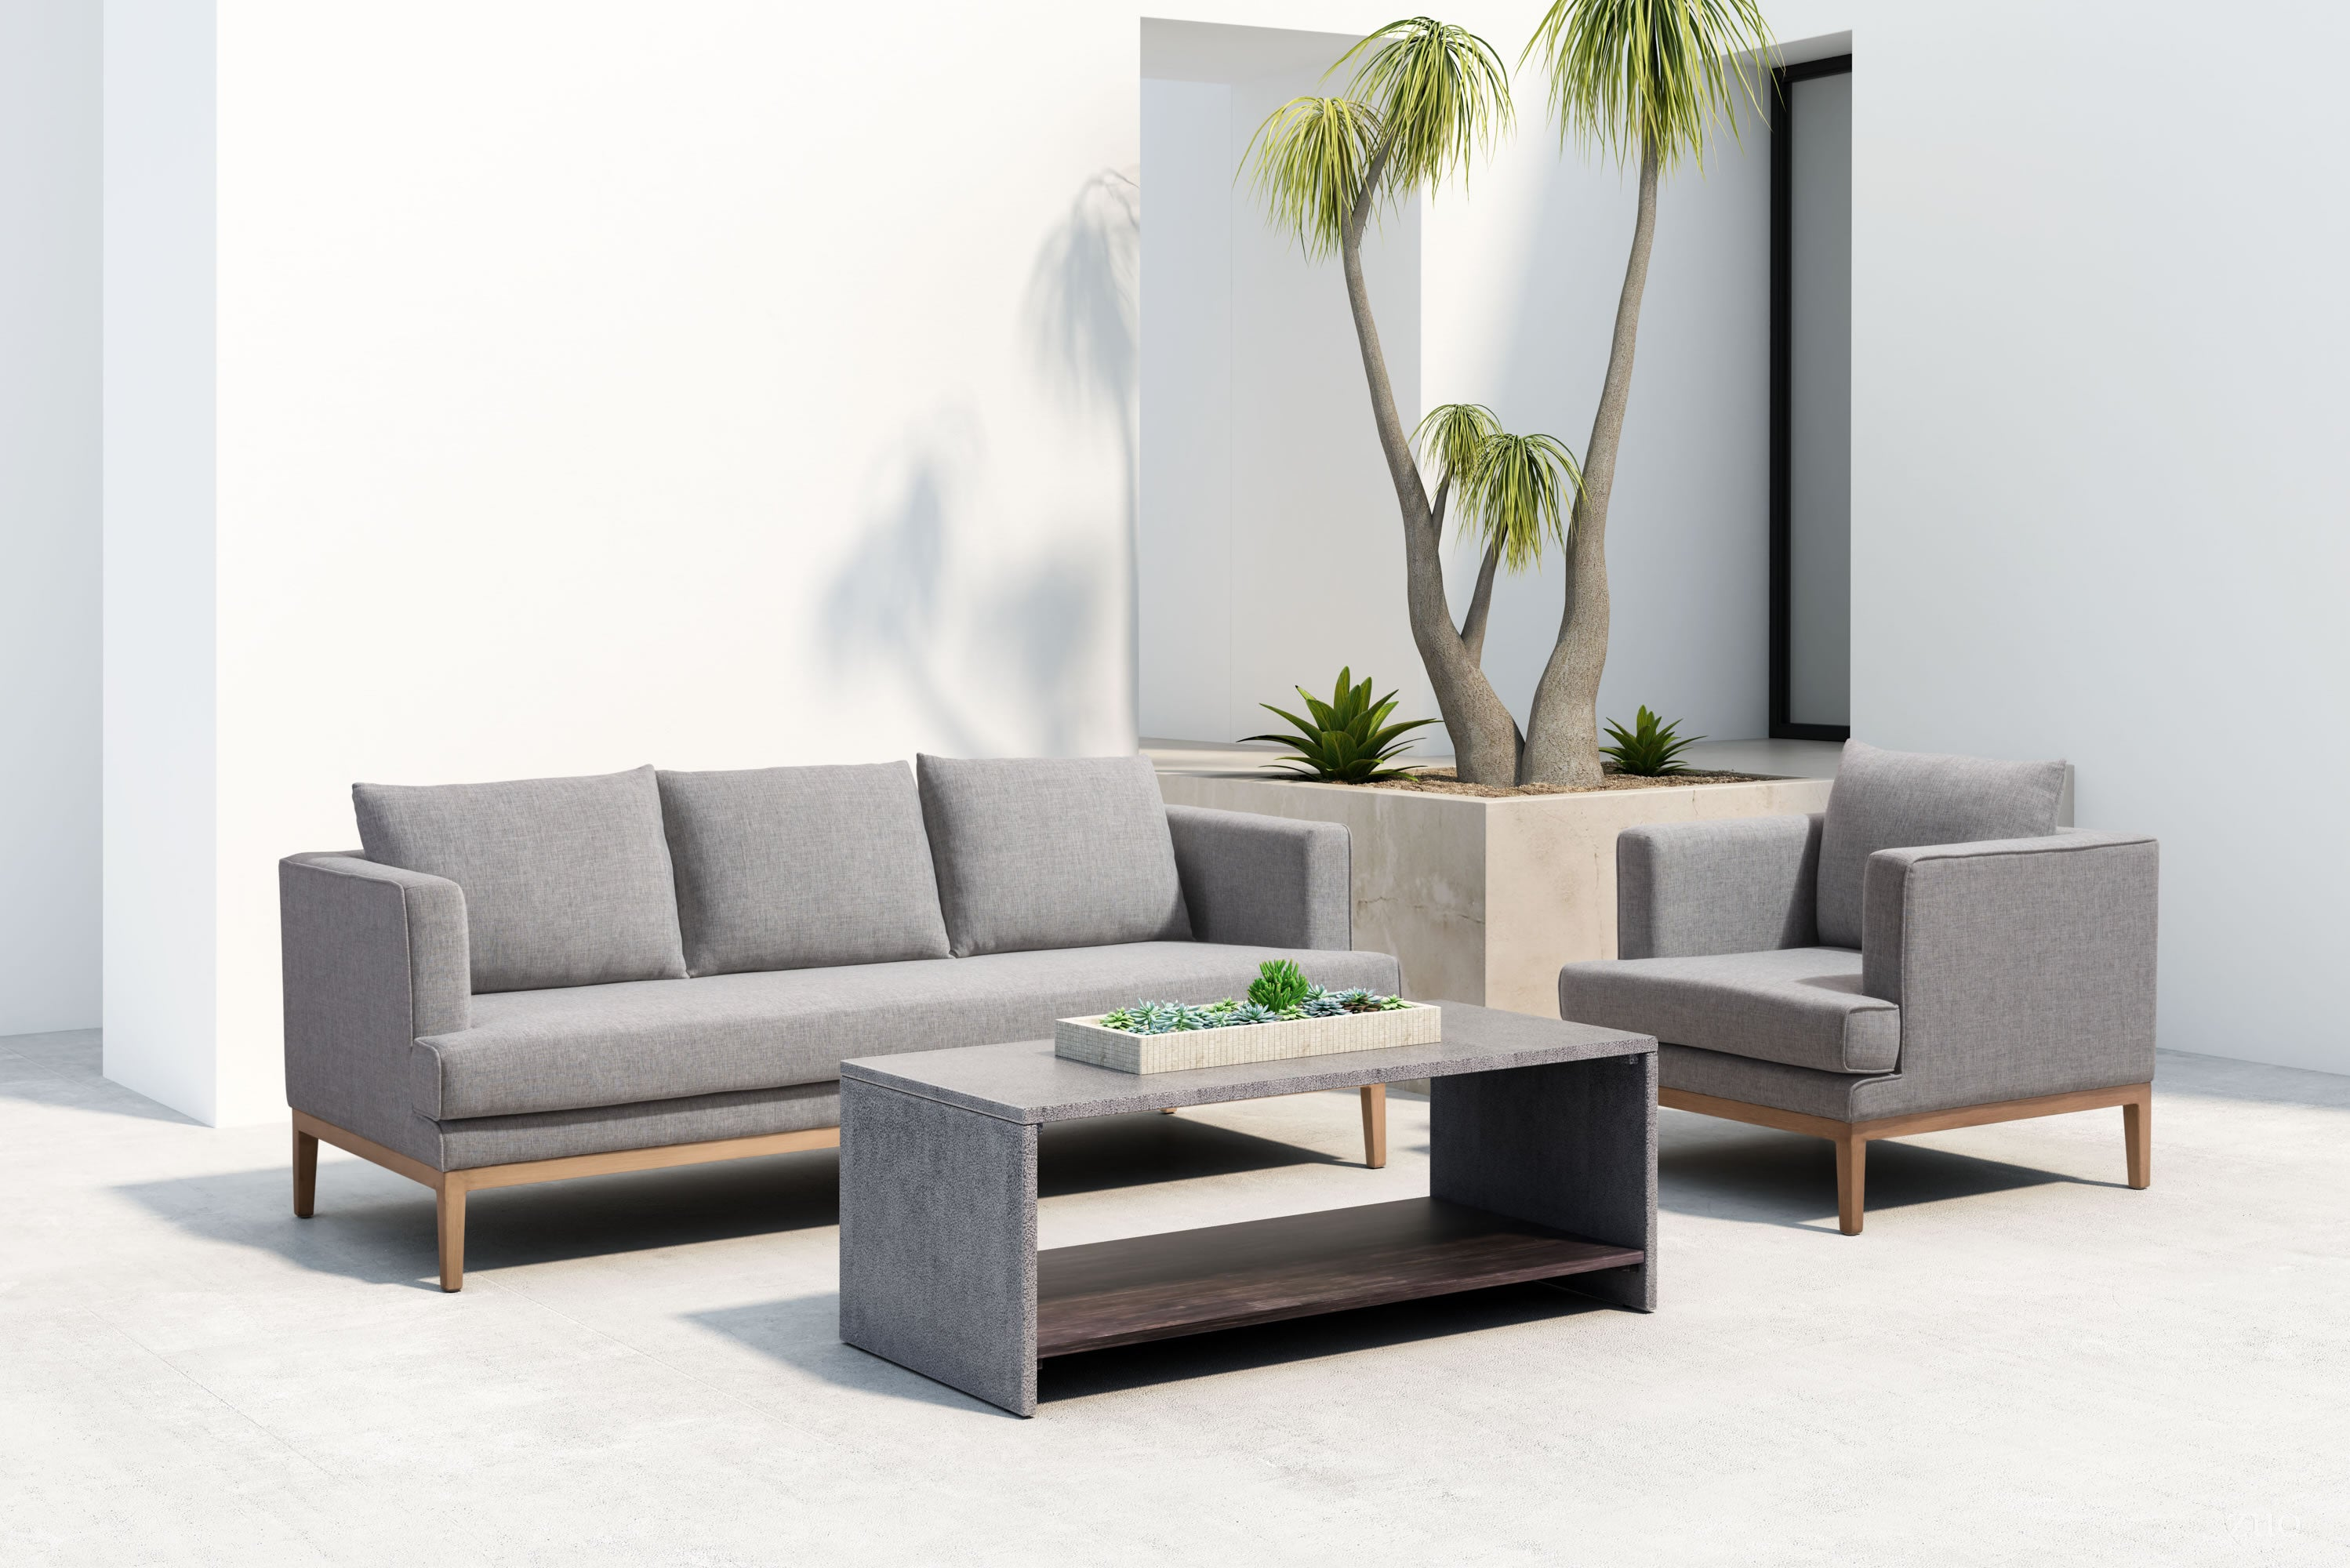 Shapes of Sectional Living Room Sofa Sets